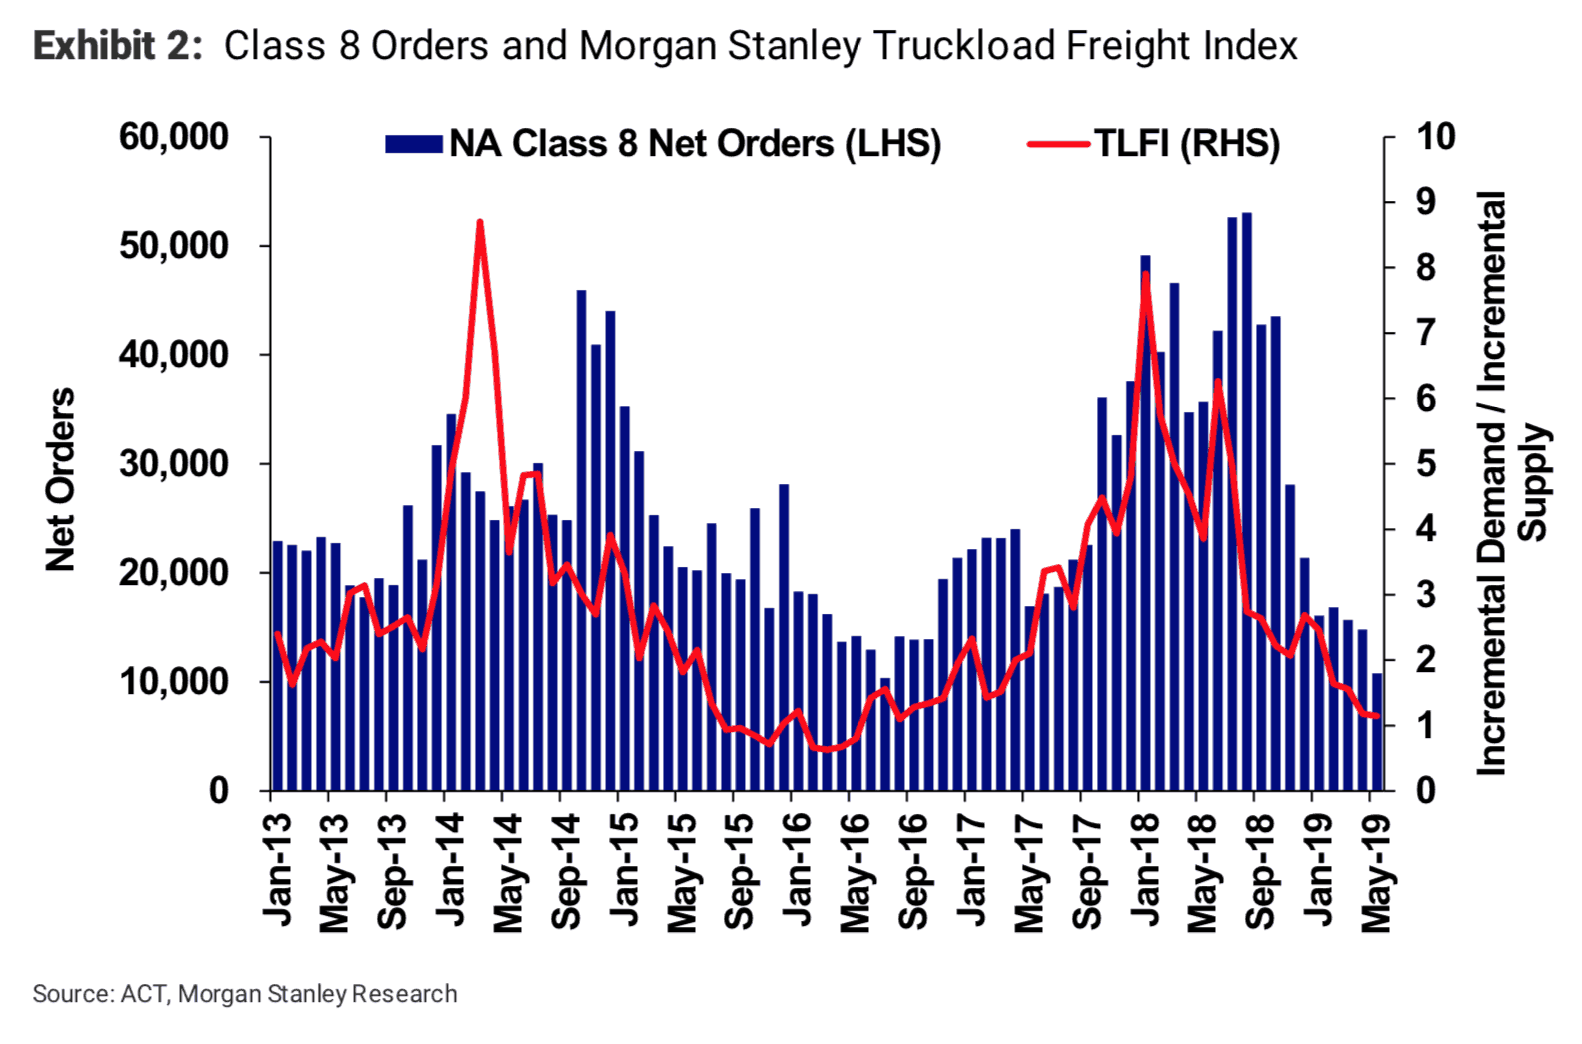 Class 8 Orders and Morgan Stanley Truckload Freight Index